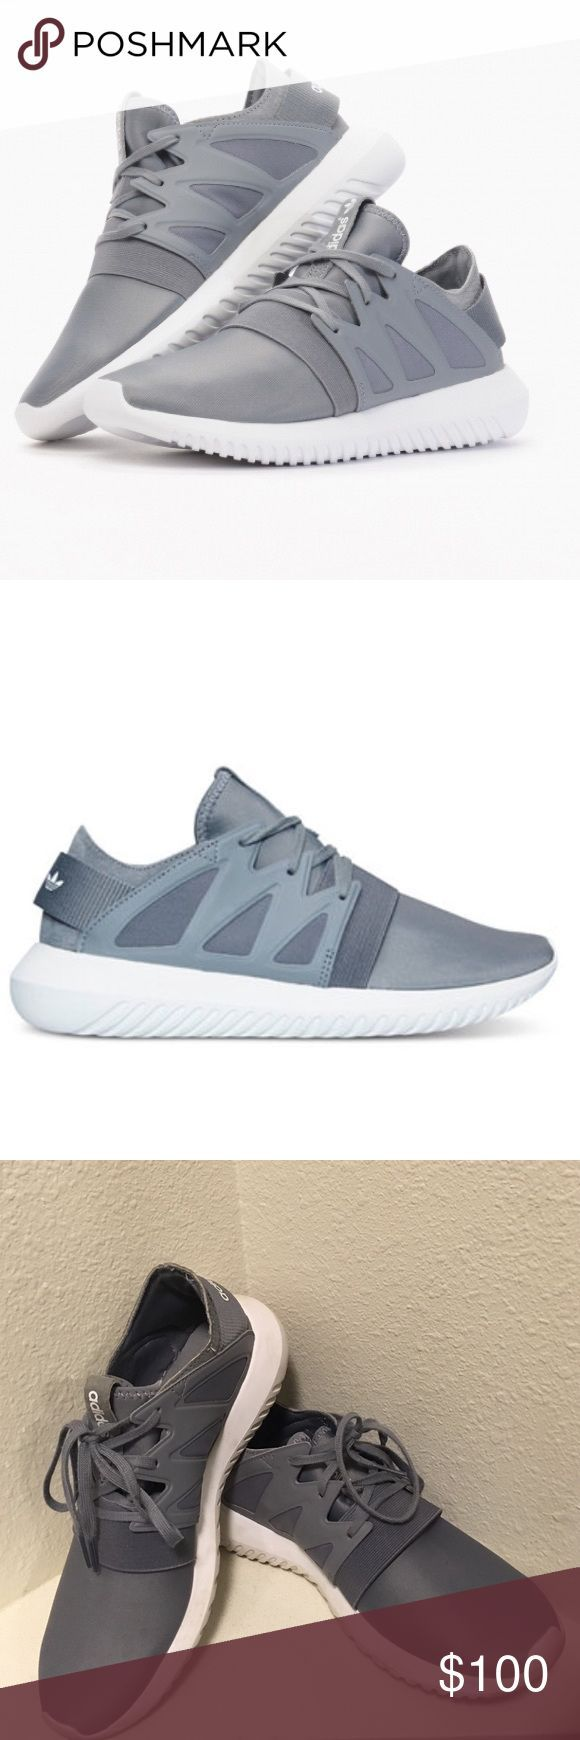 Adidas Tubular Viral Rare and sold out online! Gently used condition  <div id=